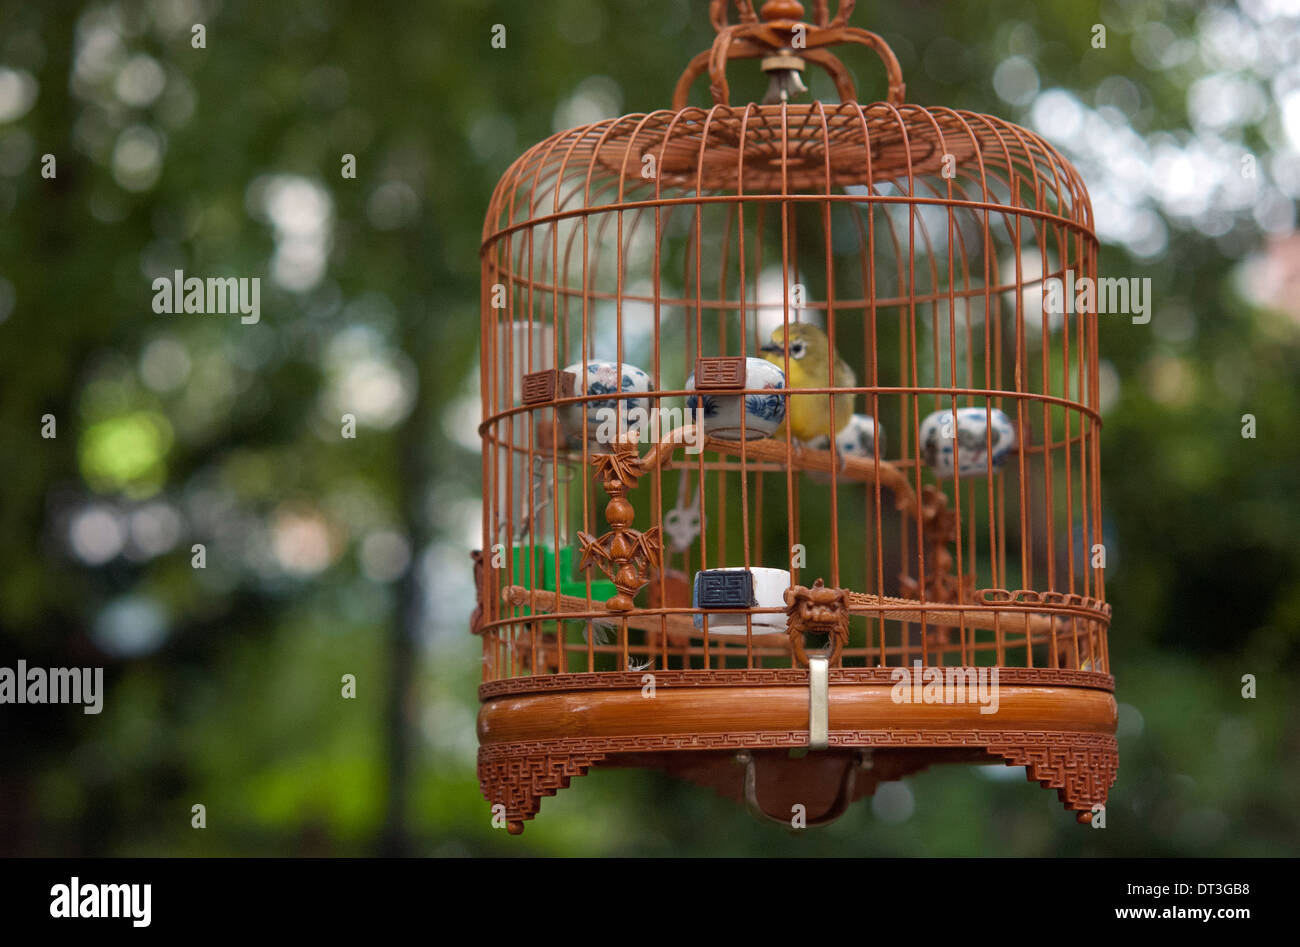 Cage In Garden Stock Photos & Cage In Garden Stock Images - Alamy